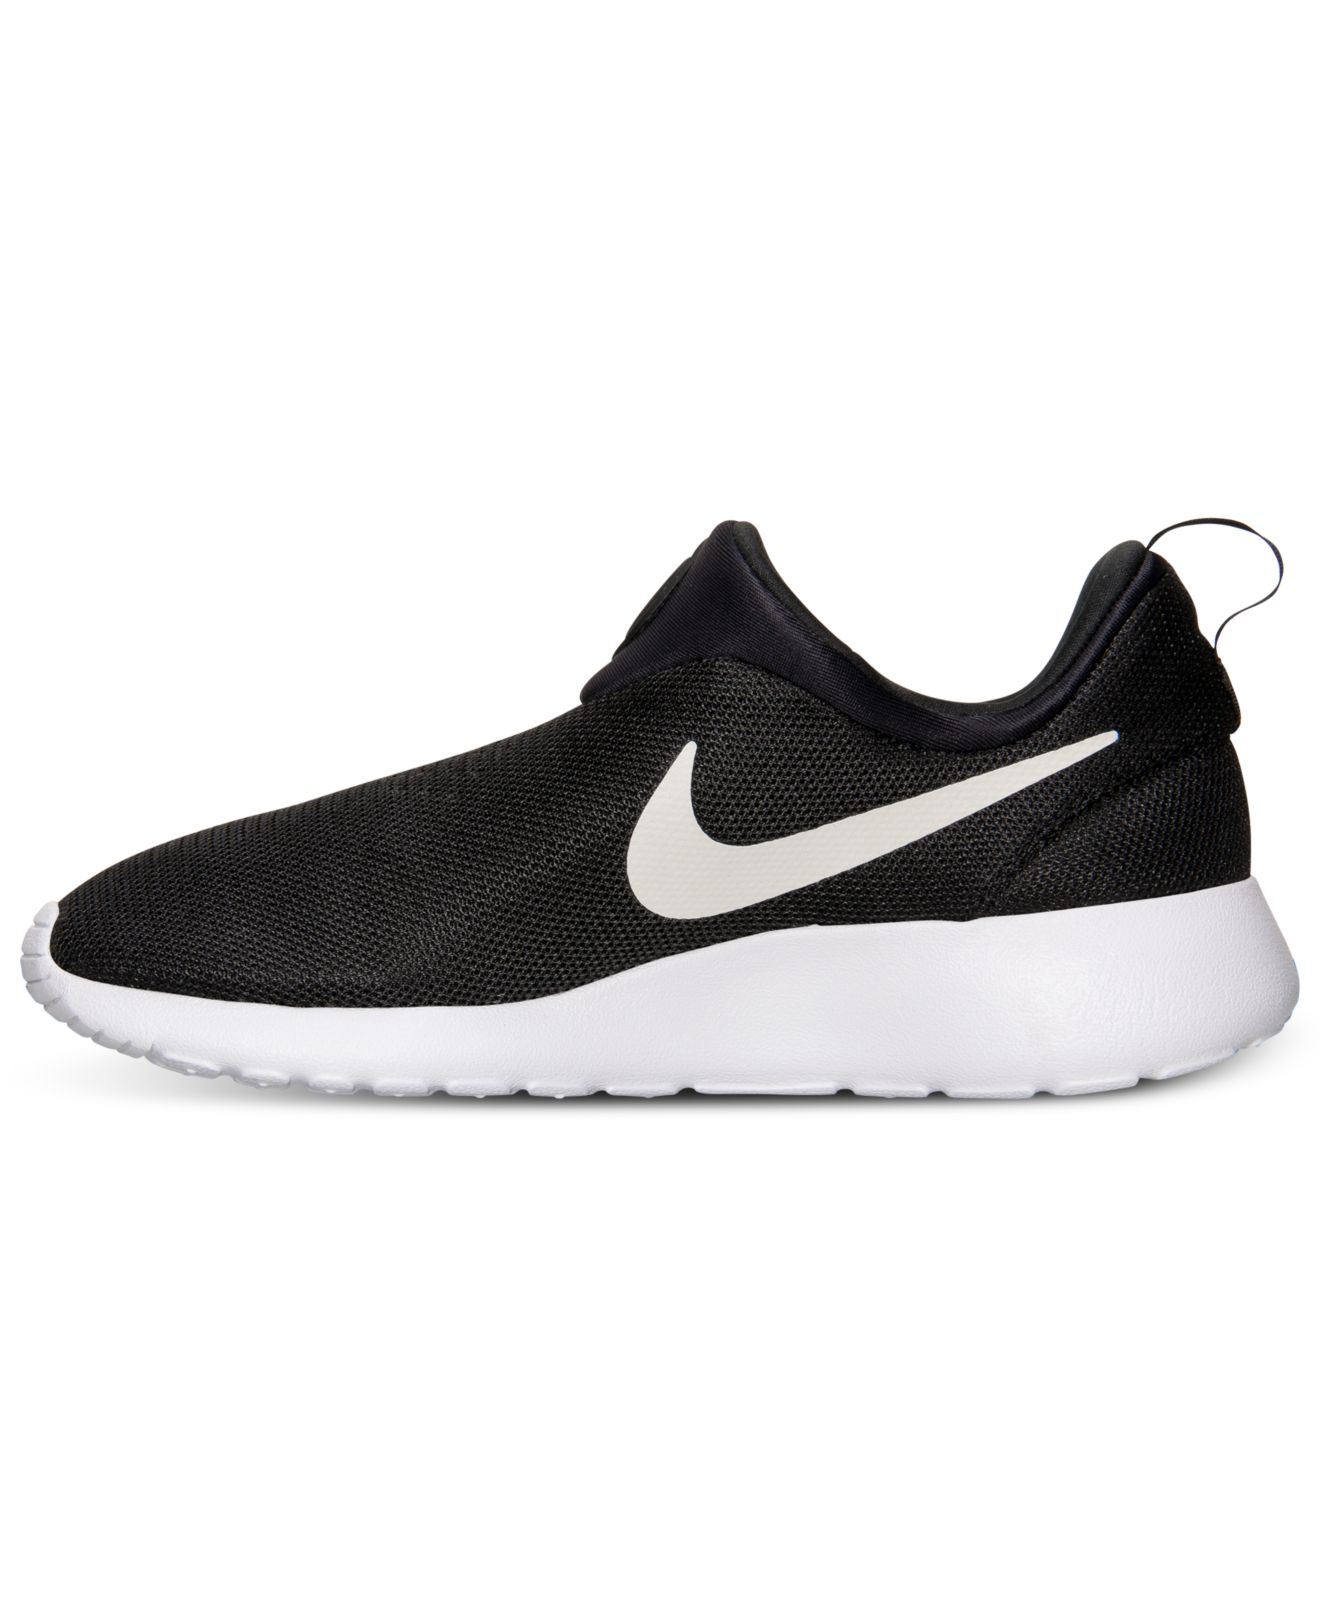 Black And White Roshe Run Shoes